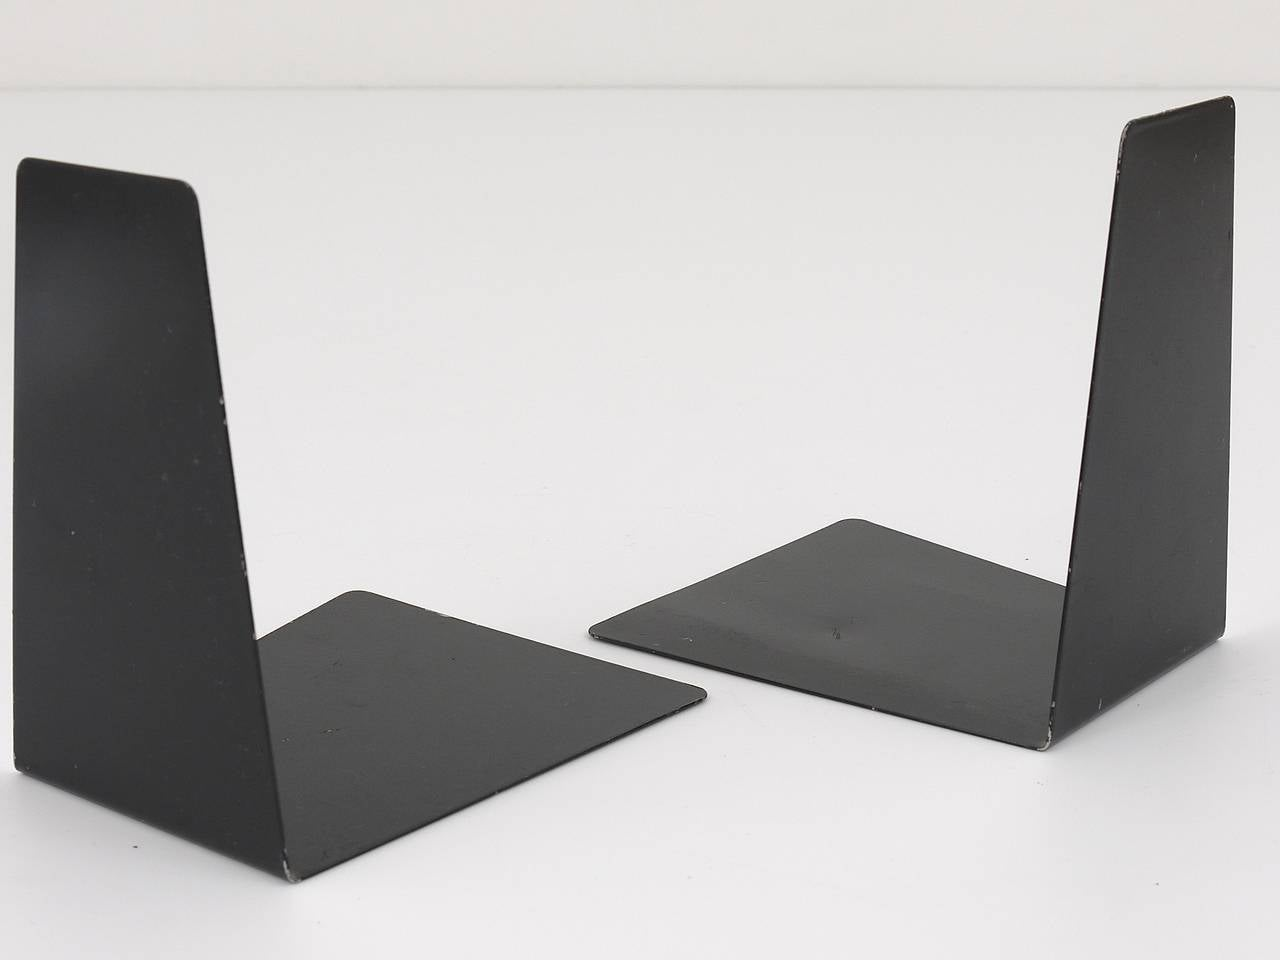 Bauhaus Black Metal Bookends by Marianne Brandt, 1930s for Ruppel, Germany For Sale 1